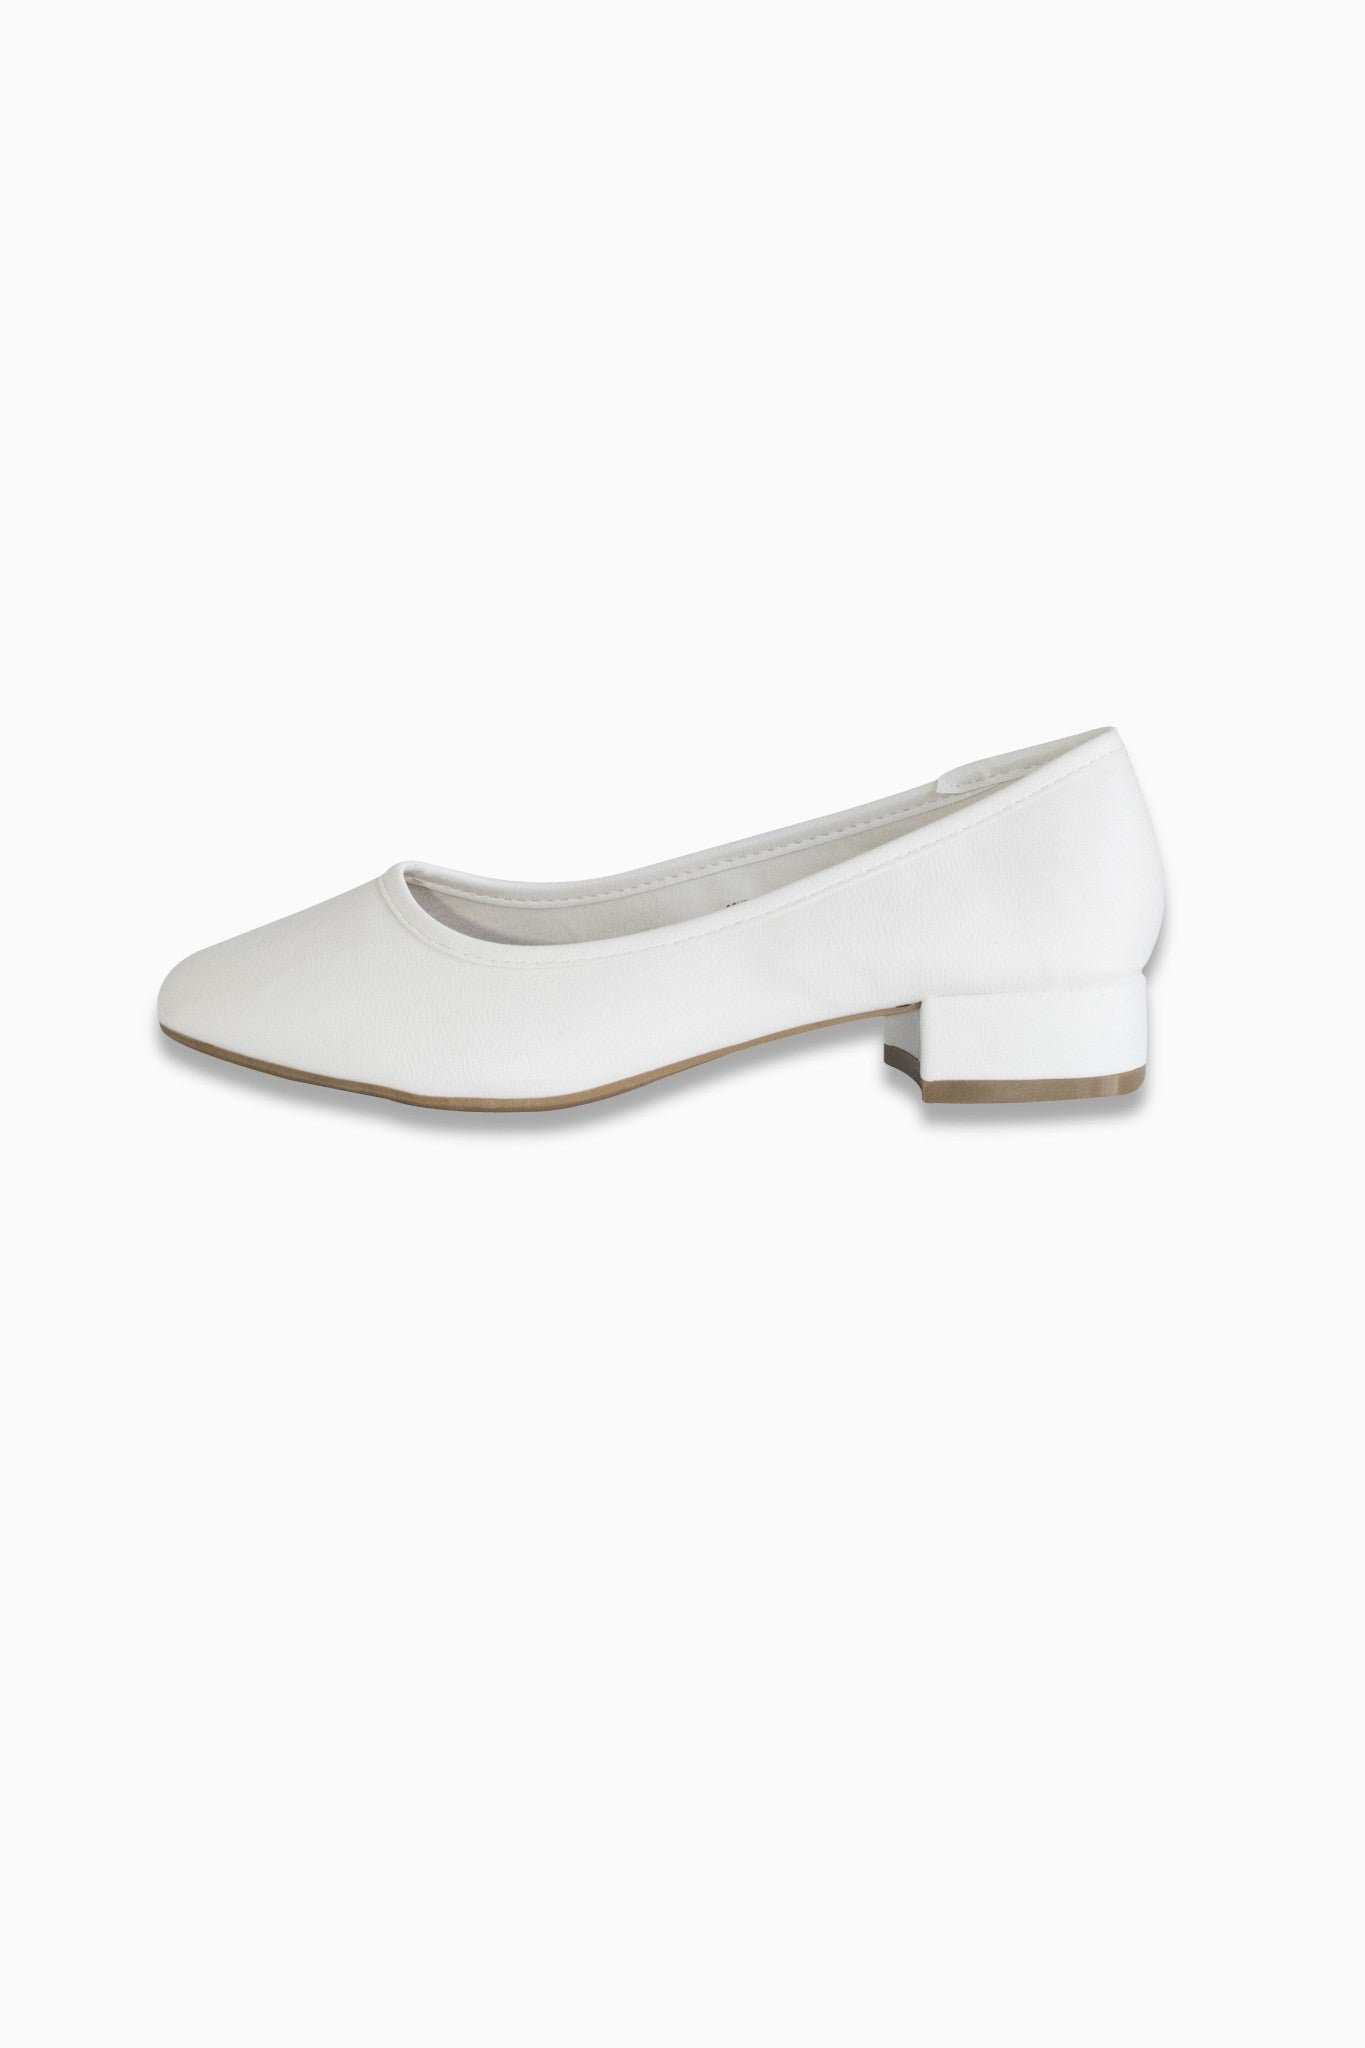 White Ballet Slip on Pump - shoe - BAMBOO - MOD&SOUL